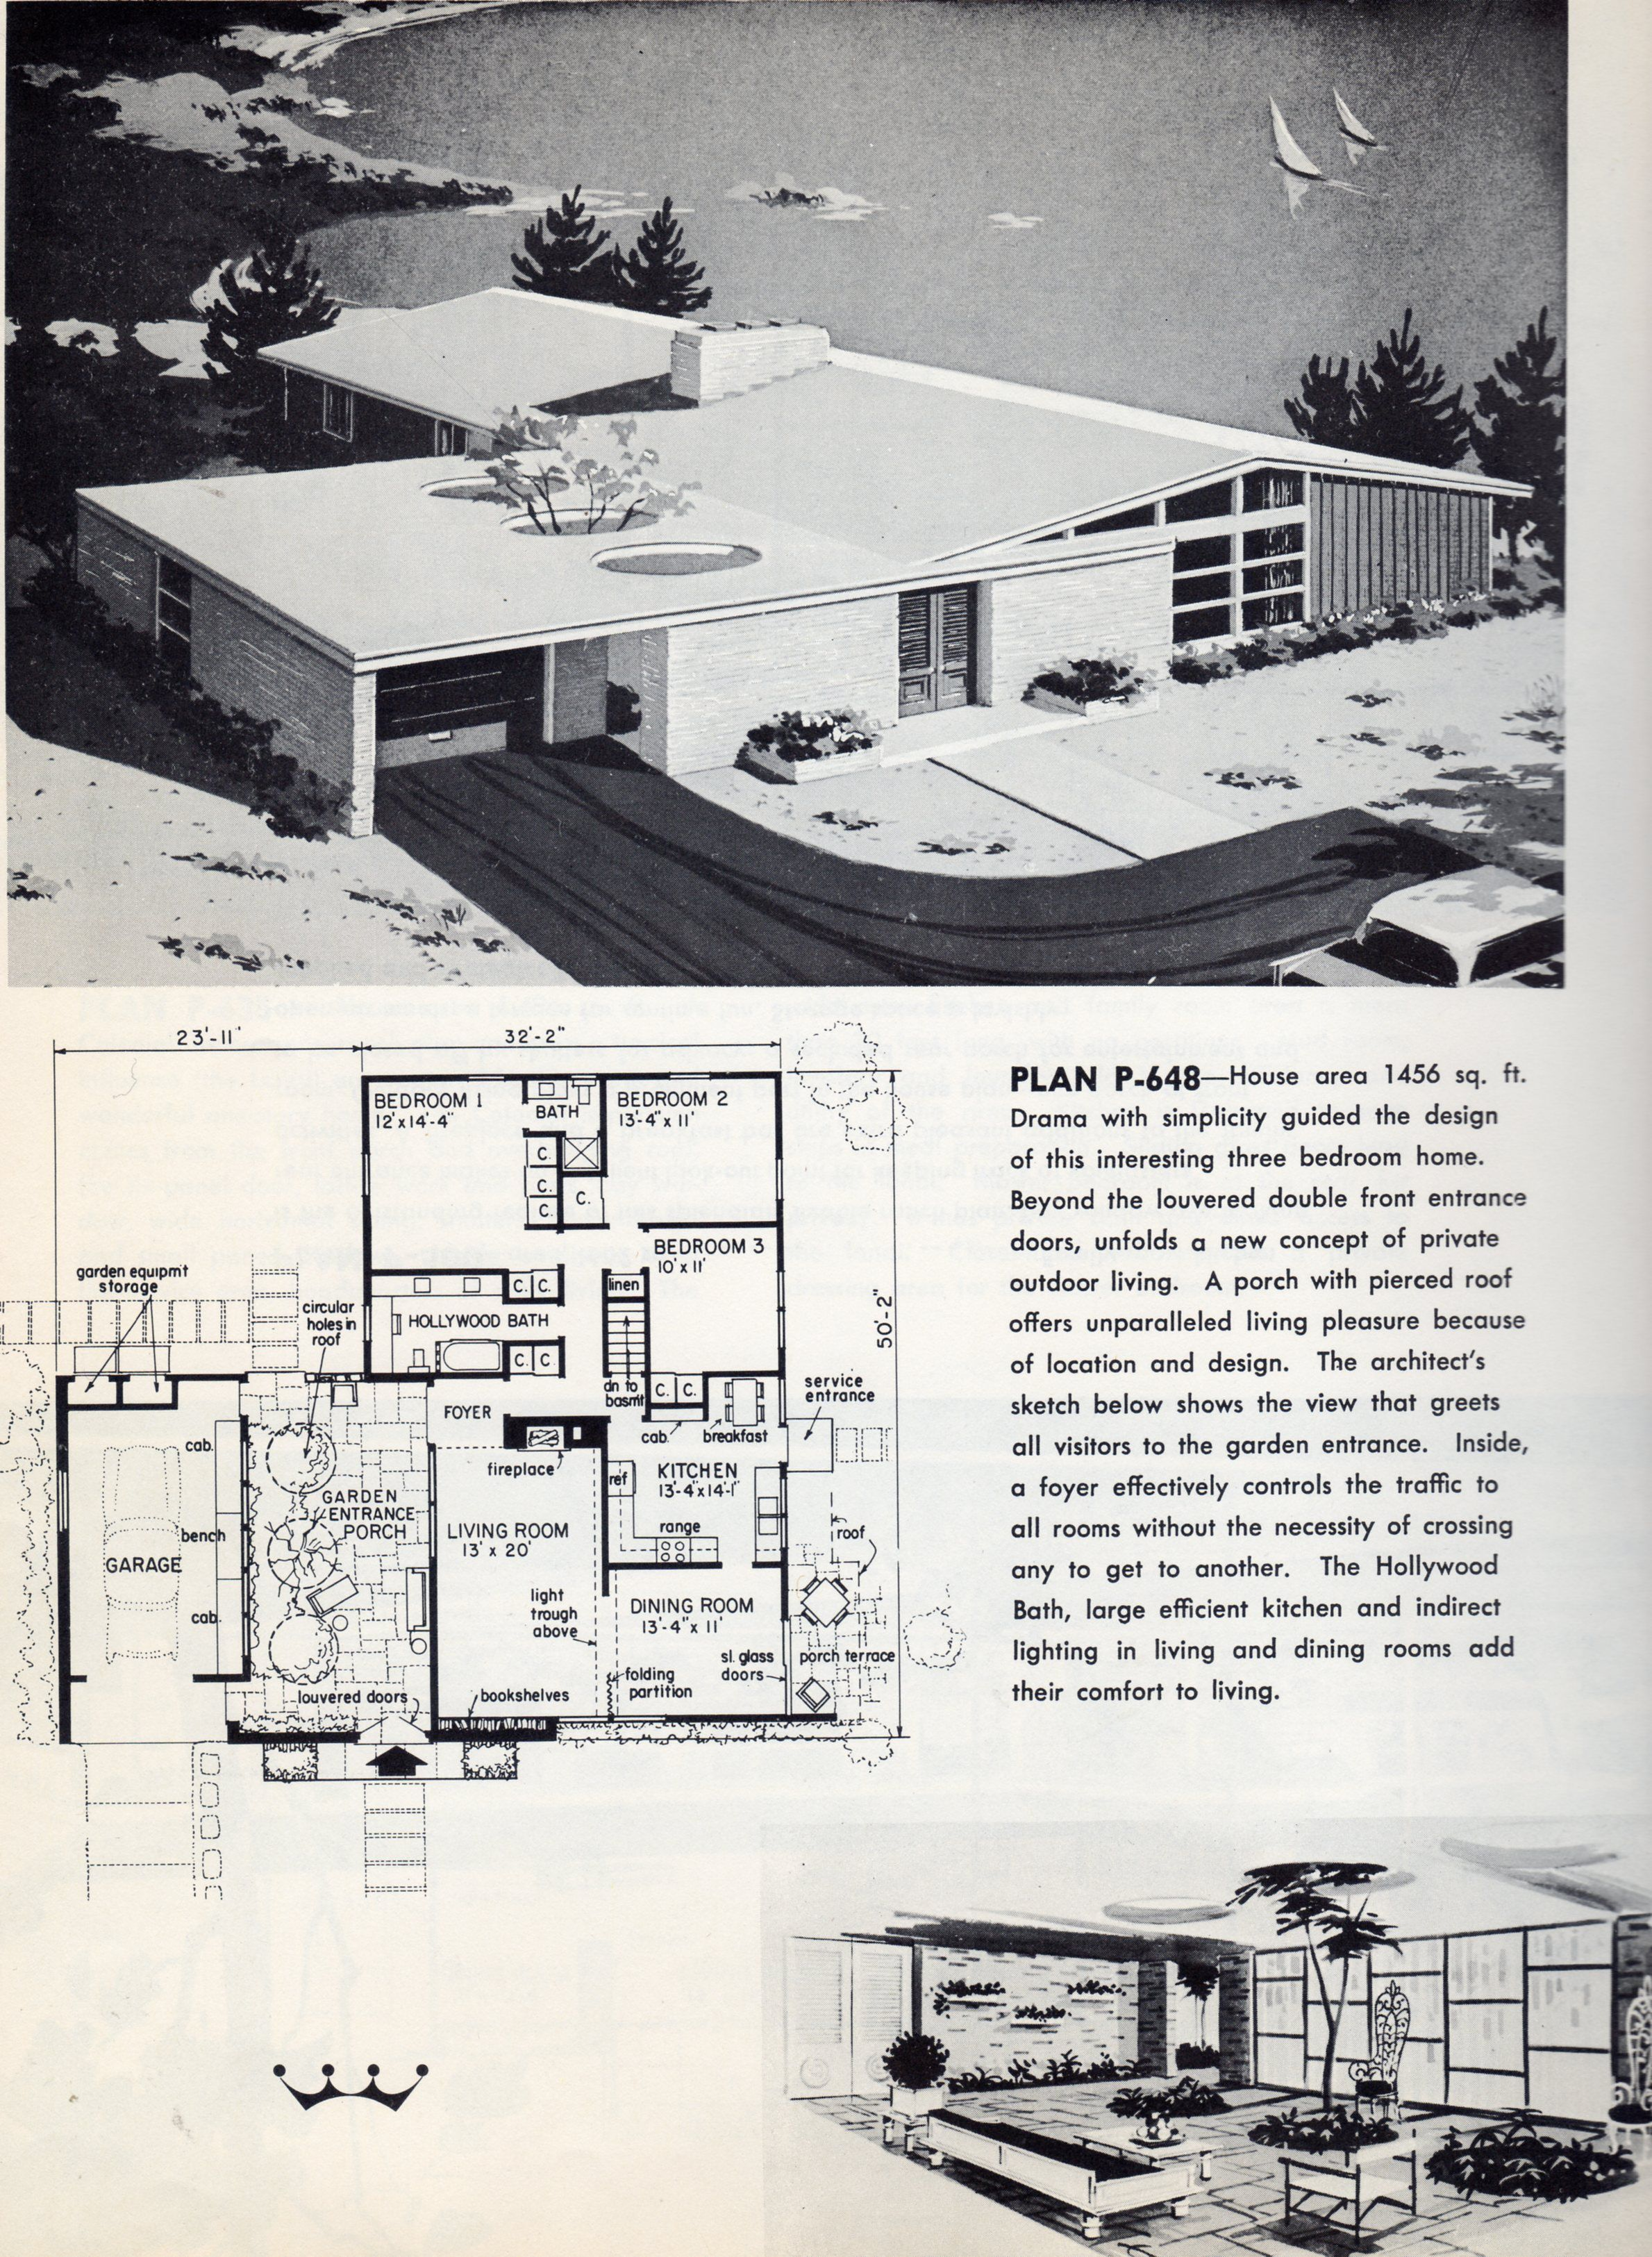 Pin by Ody Rivas on |vintage house plans | Vintage house ...